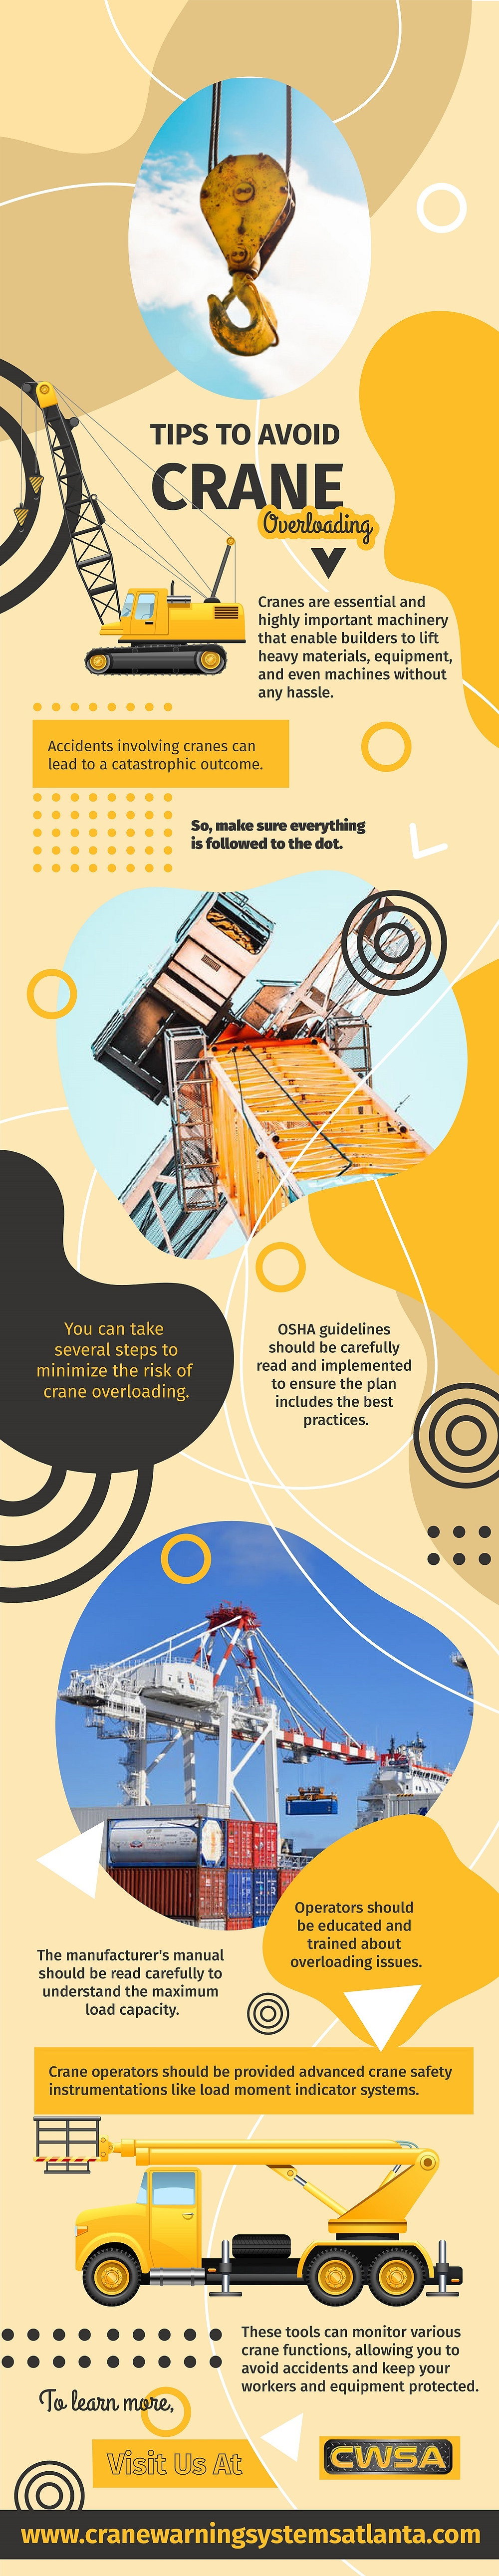 Tips To Avoid Crane Overloading